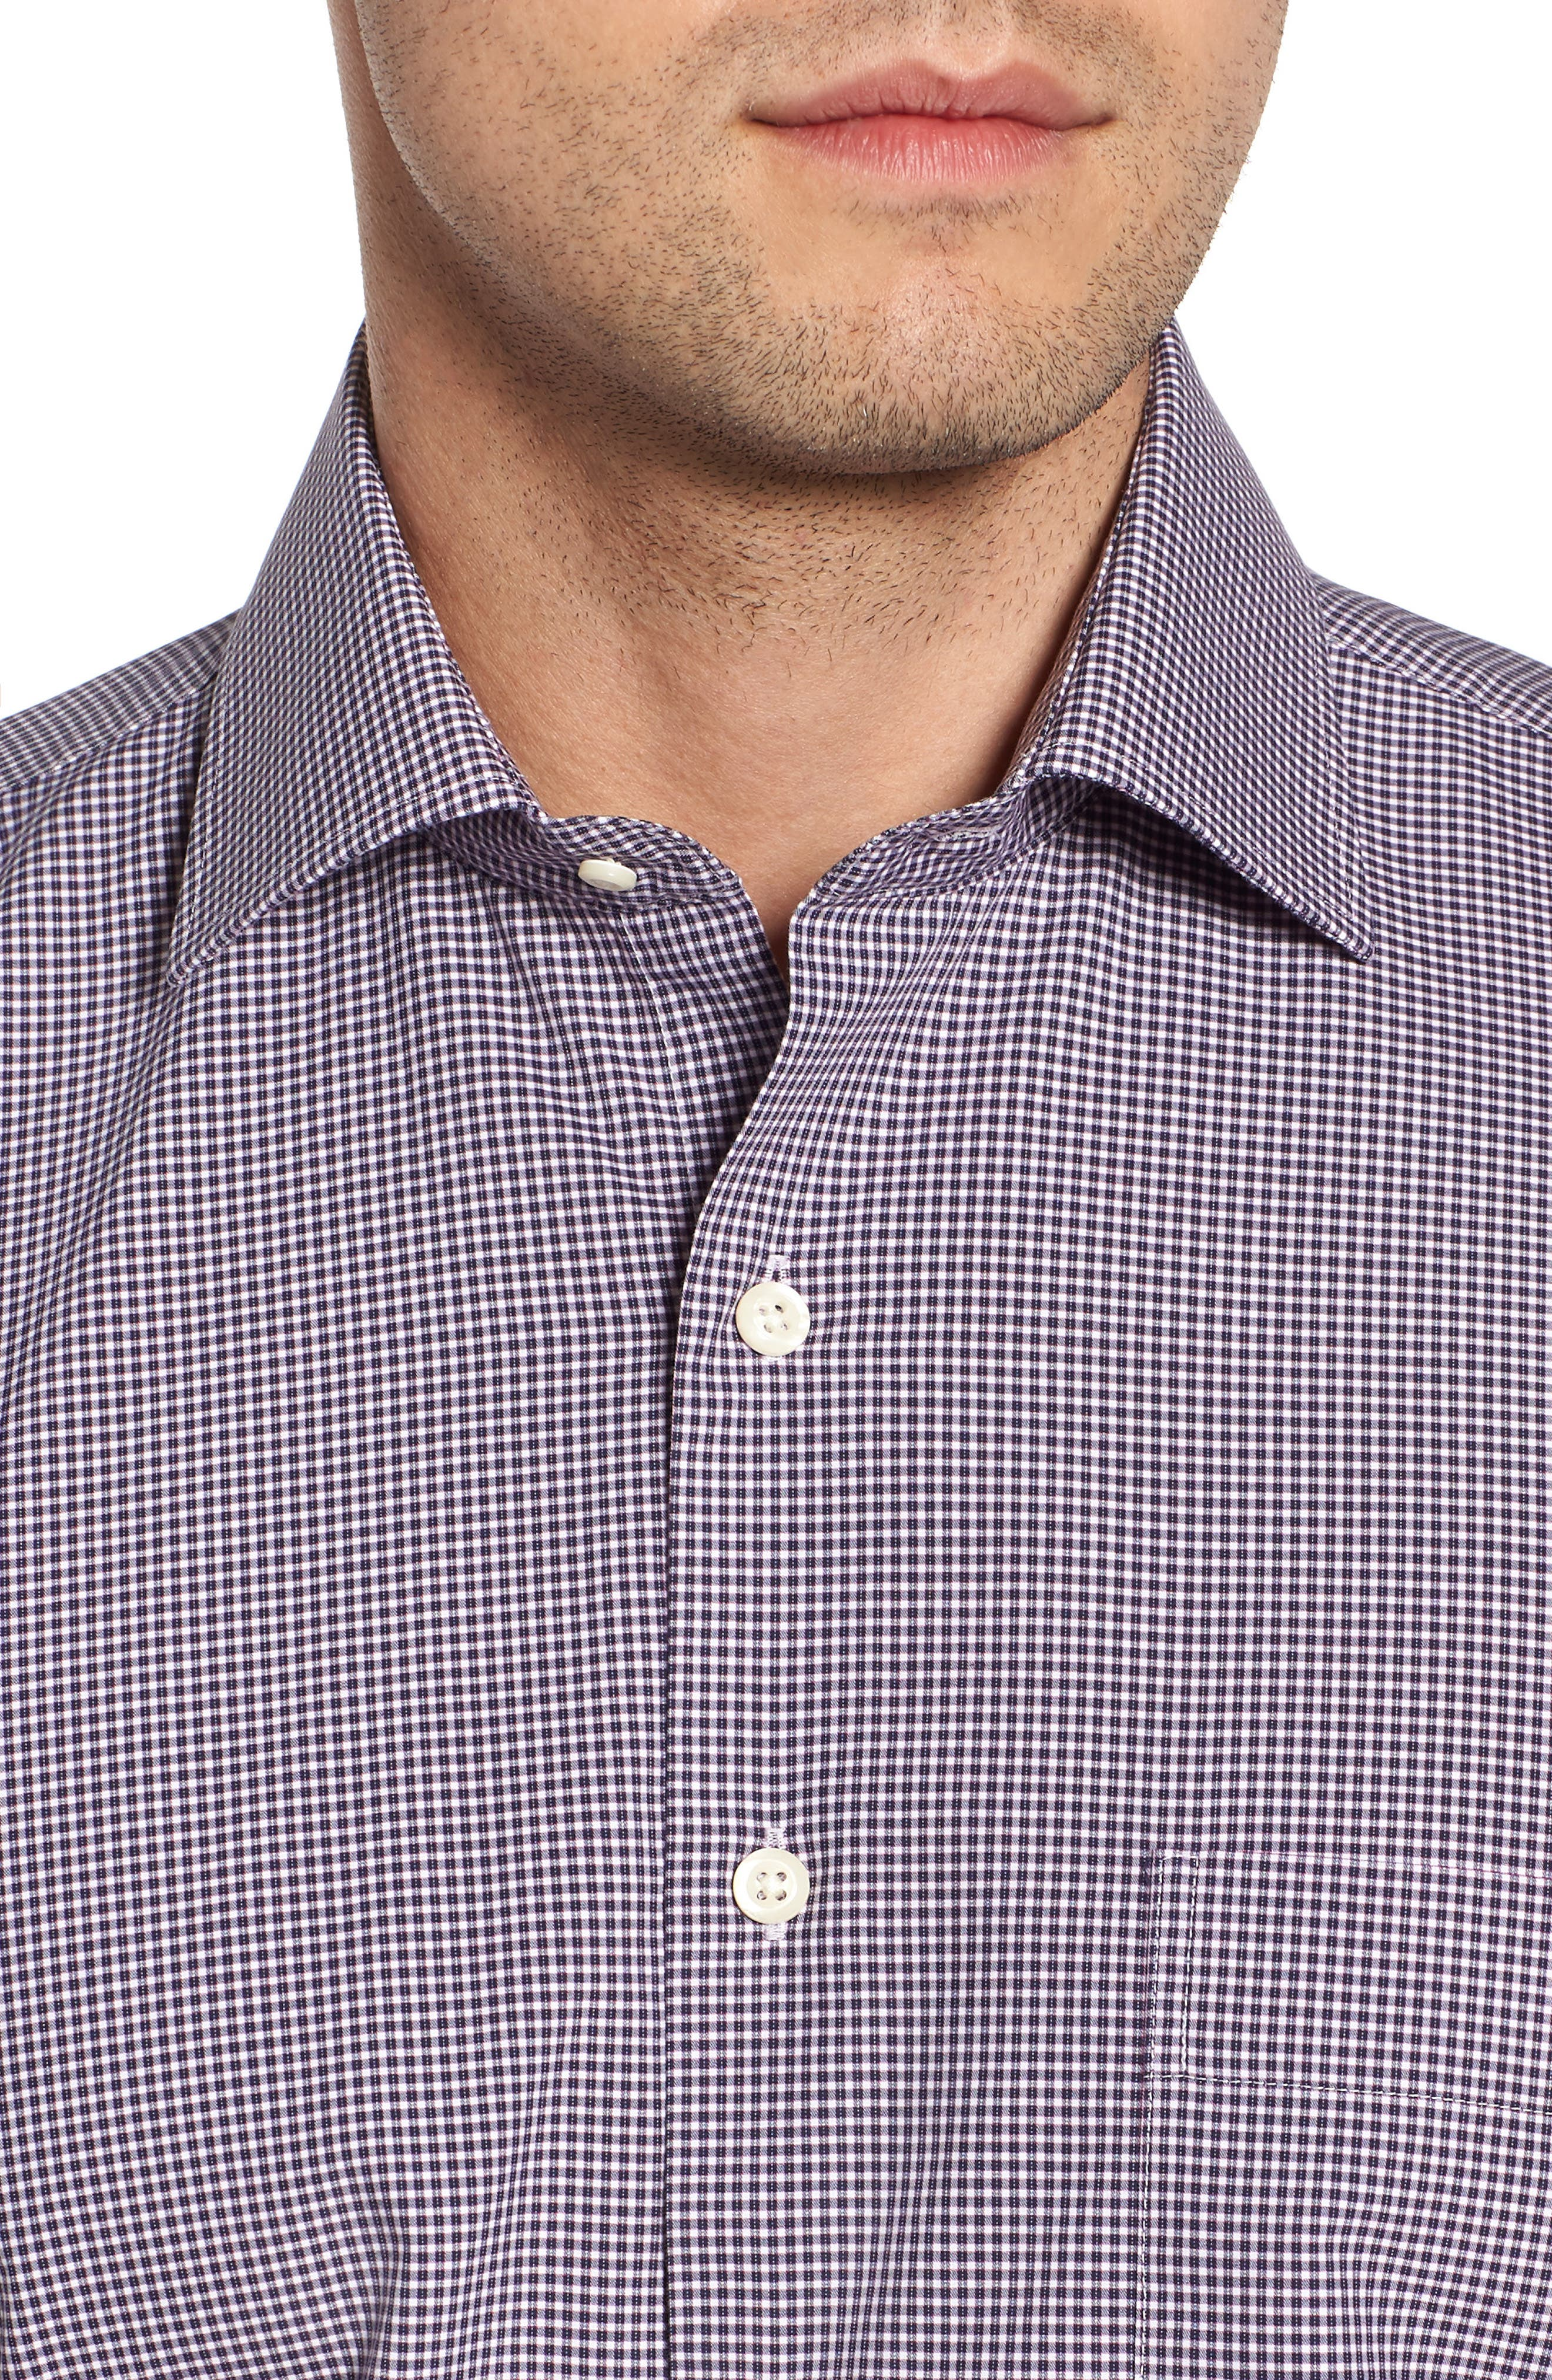 Crown Finish Wedgwood Microcheck Sport Shirt,                             Alternate thumbnail 2, color,                             Navy